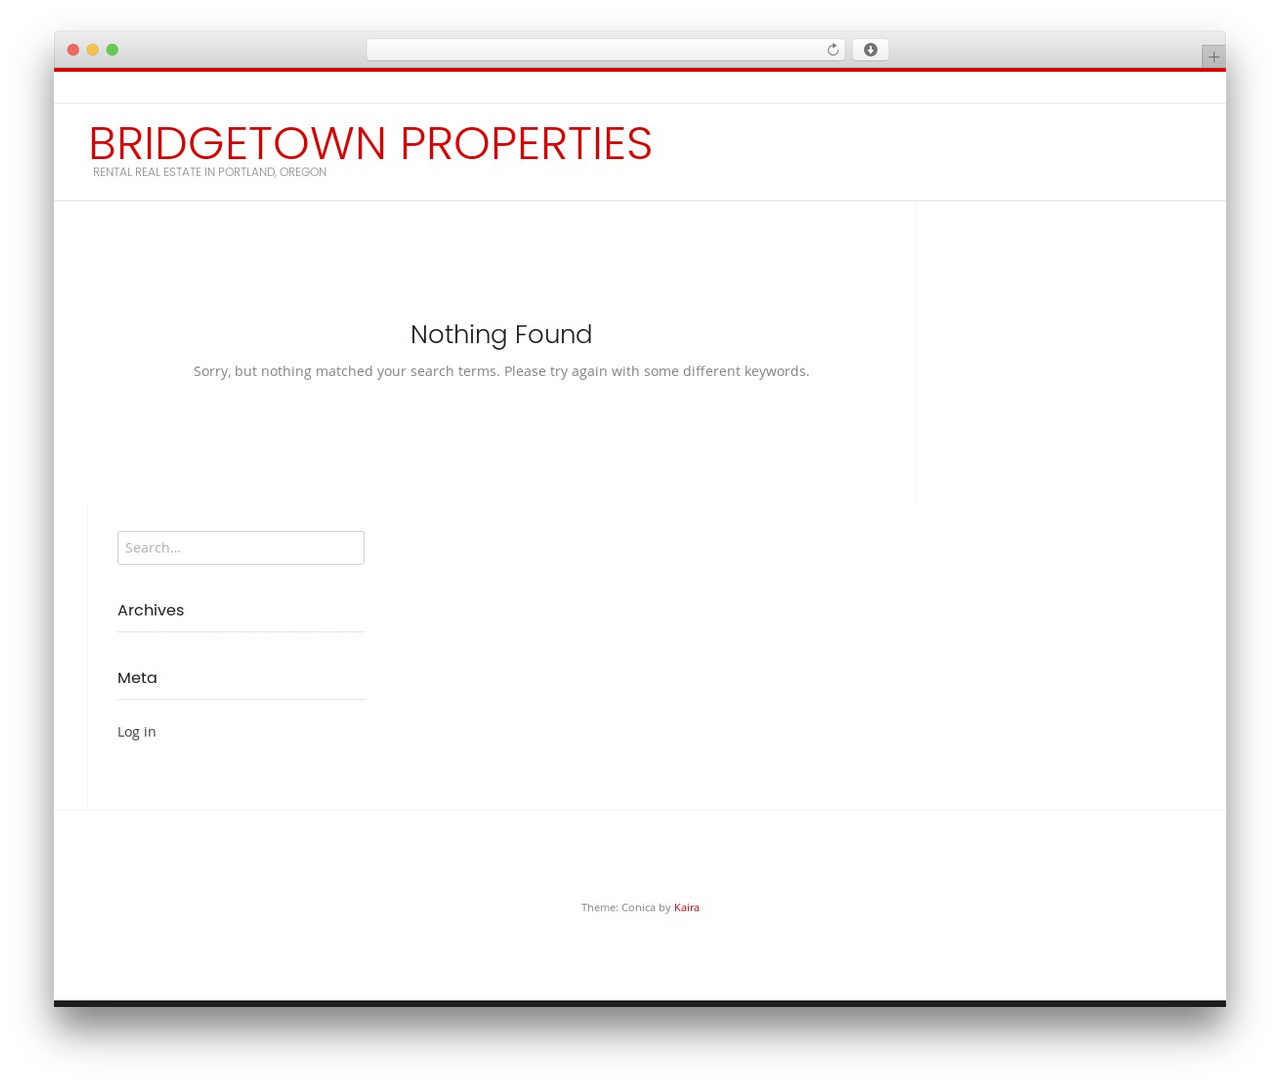 Conica template WordPress free - bridgetownproperties.com